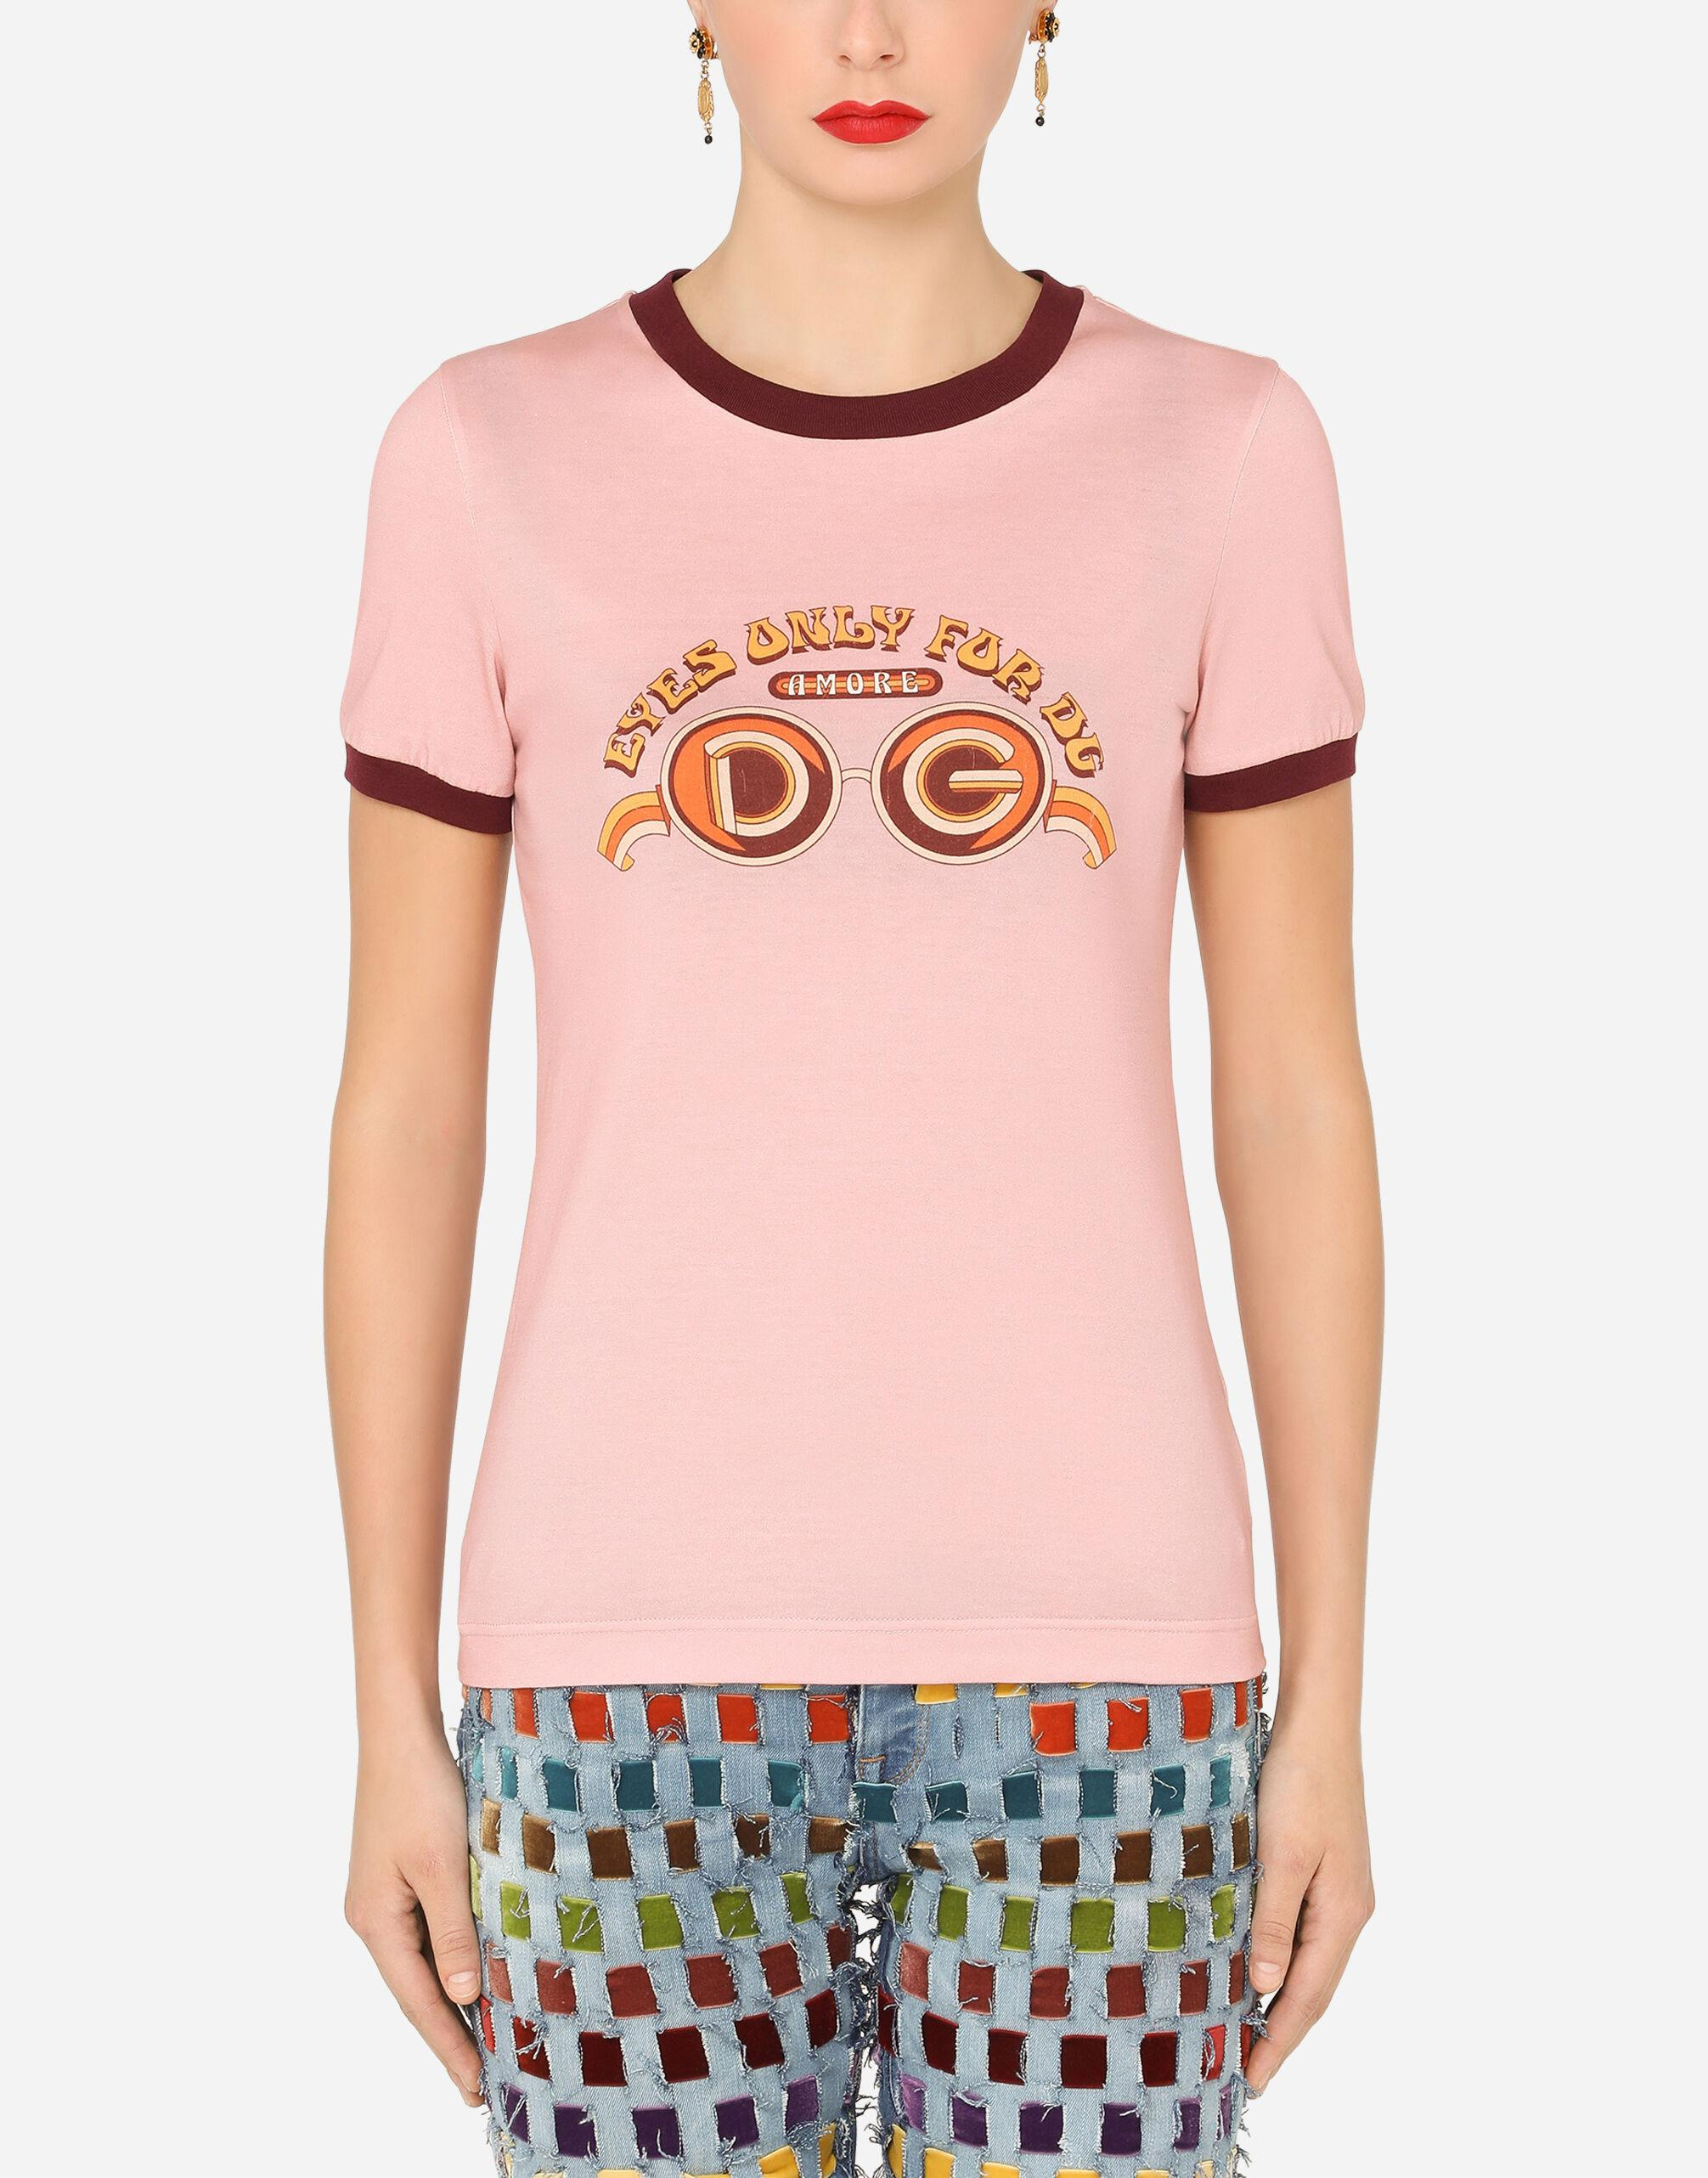 Short-sleeved jersey t-shirt with eyes only for DG print